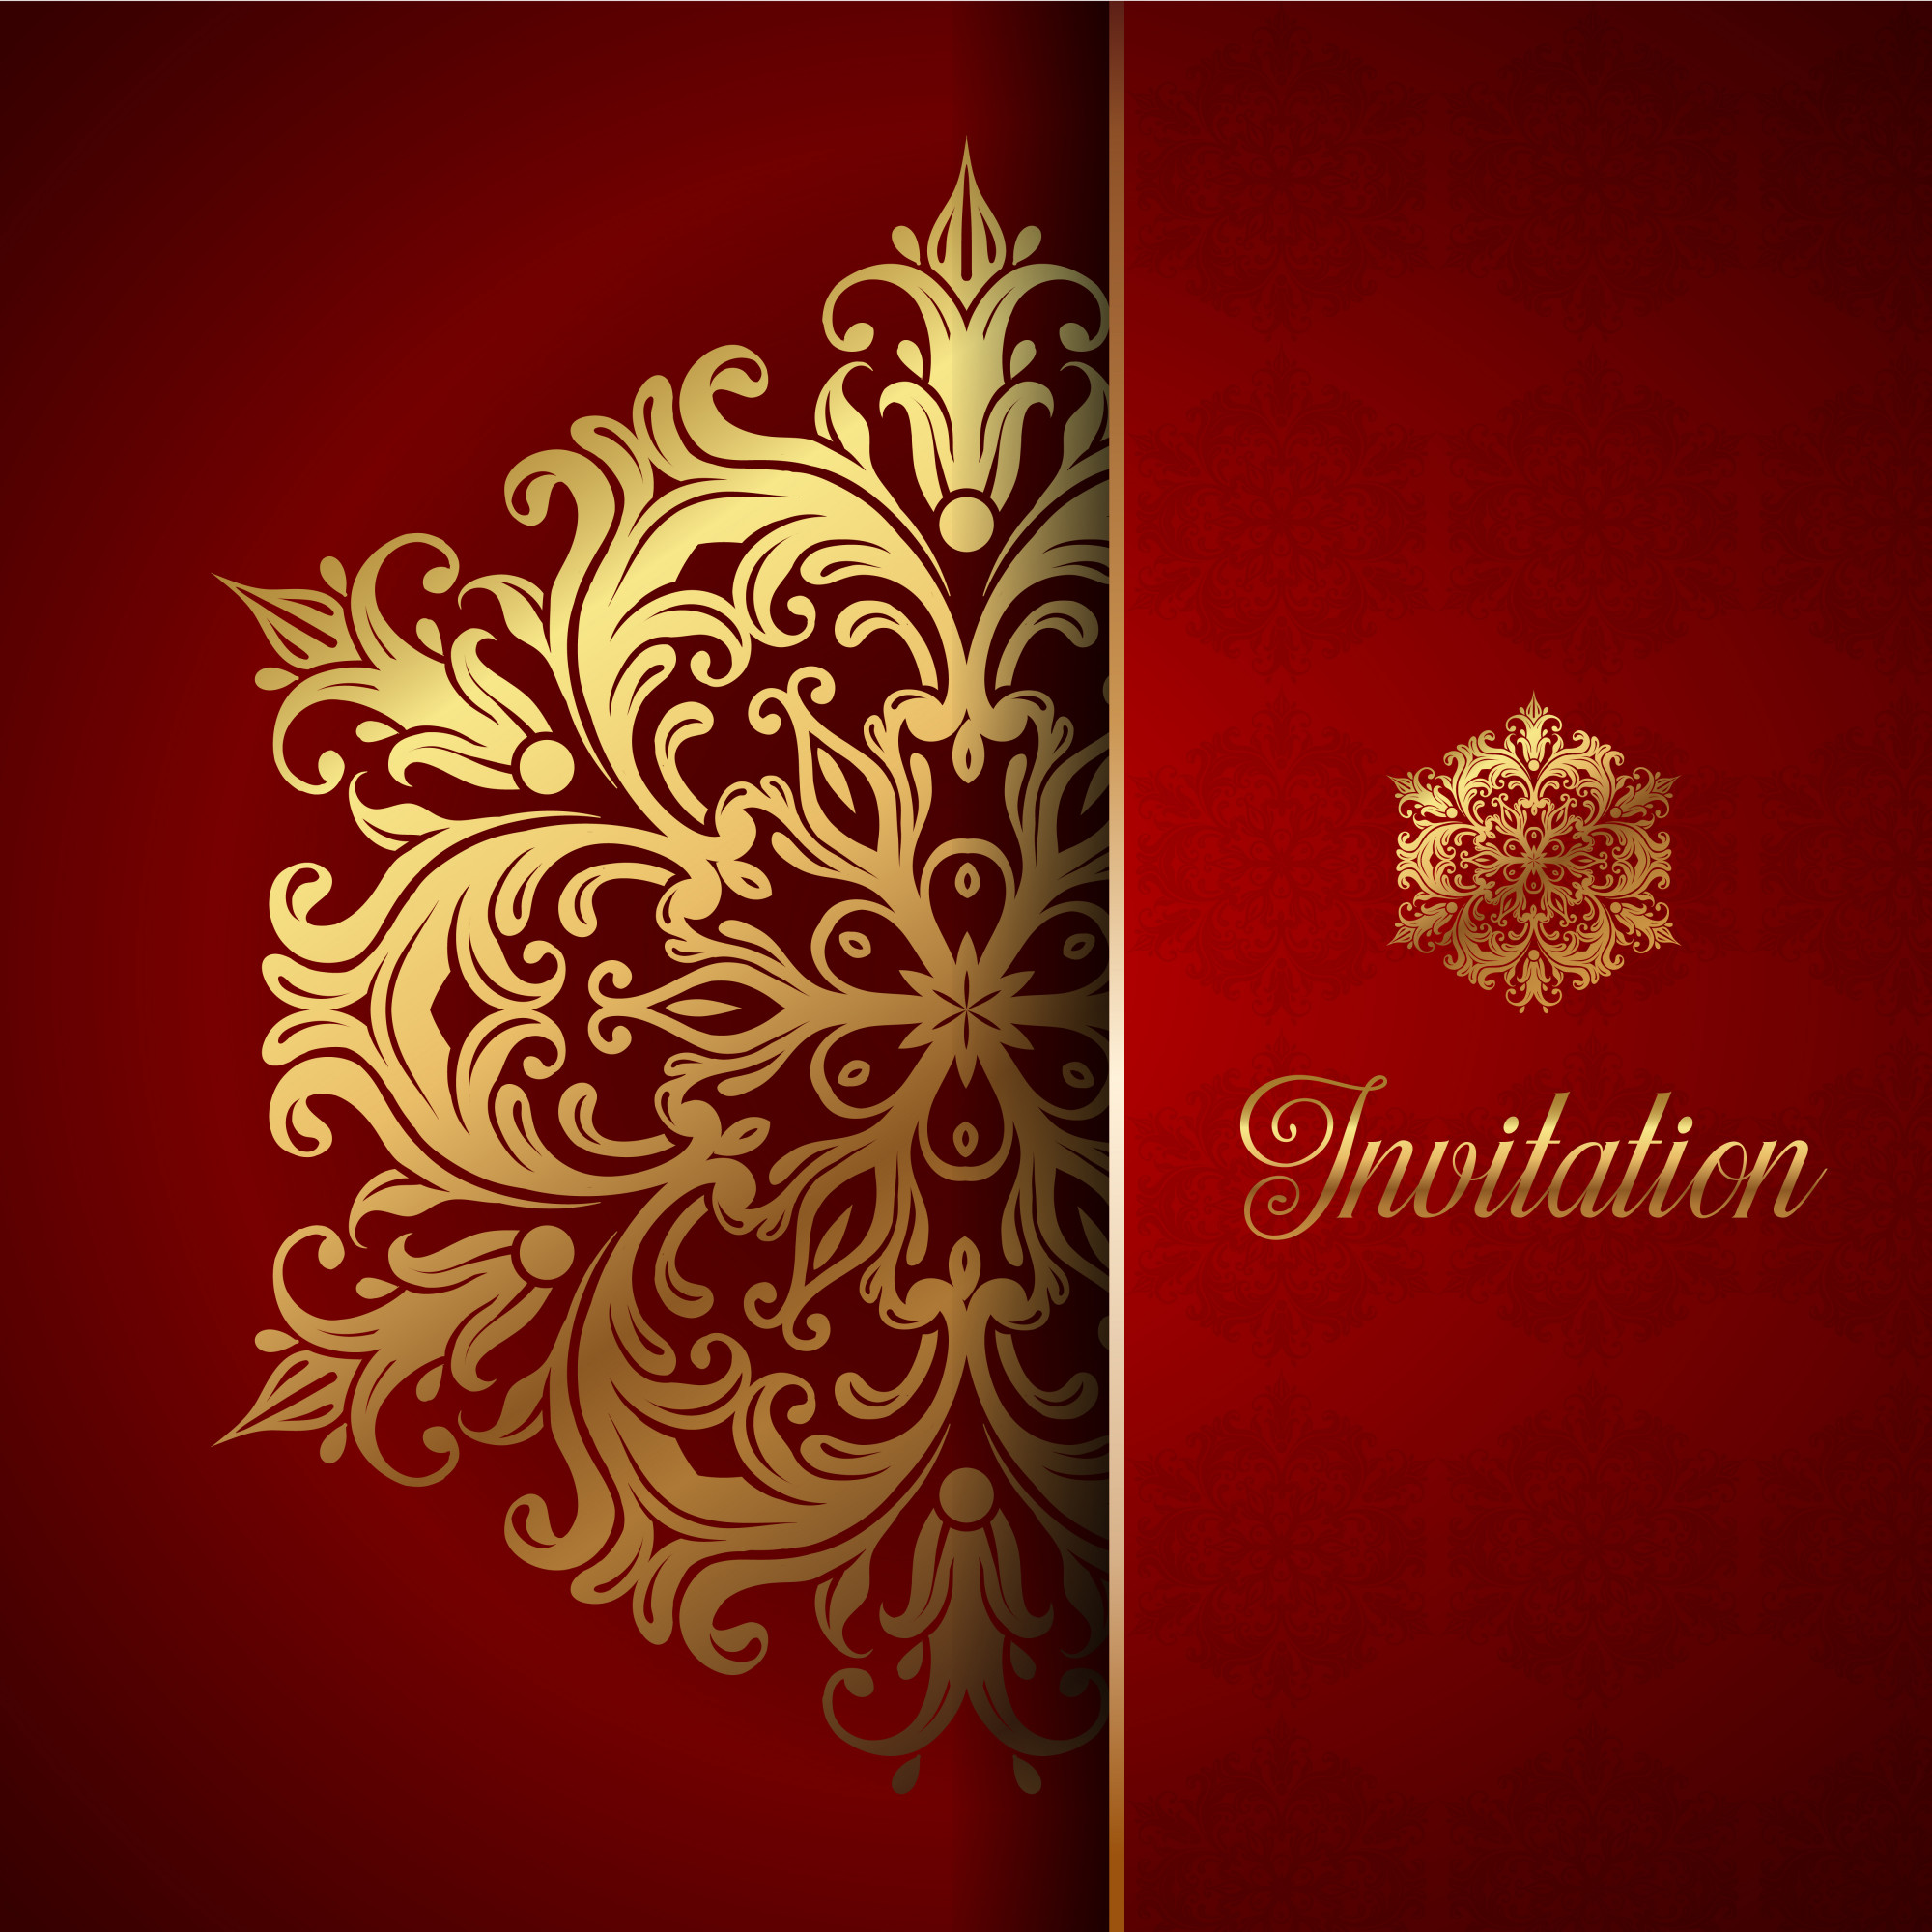 Decorative invitation background